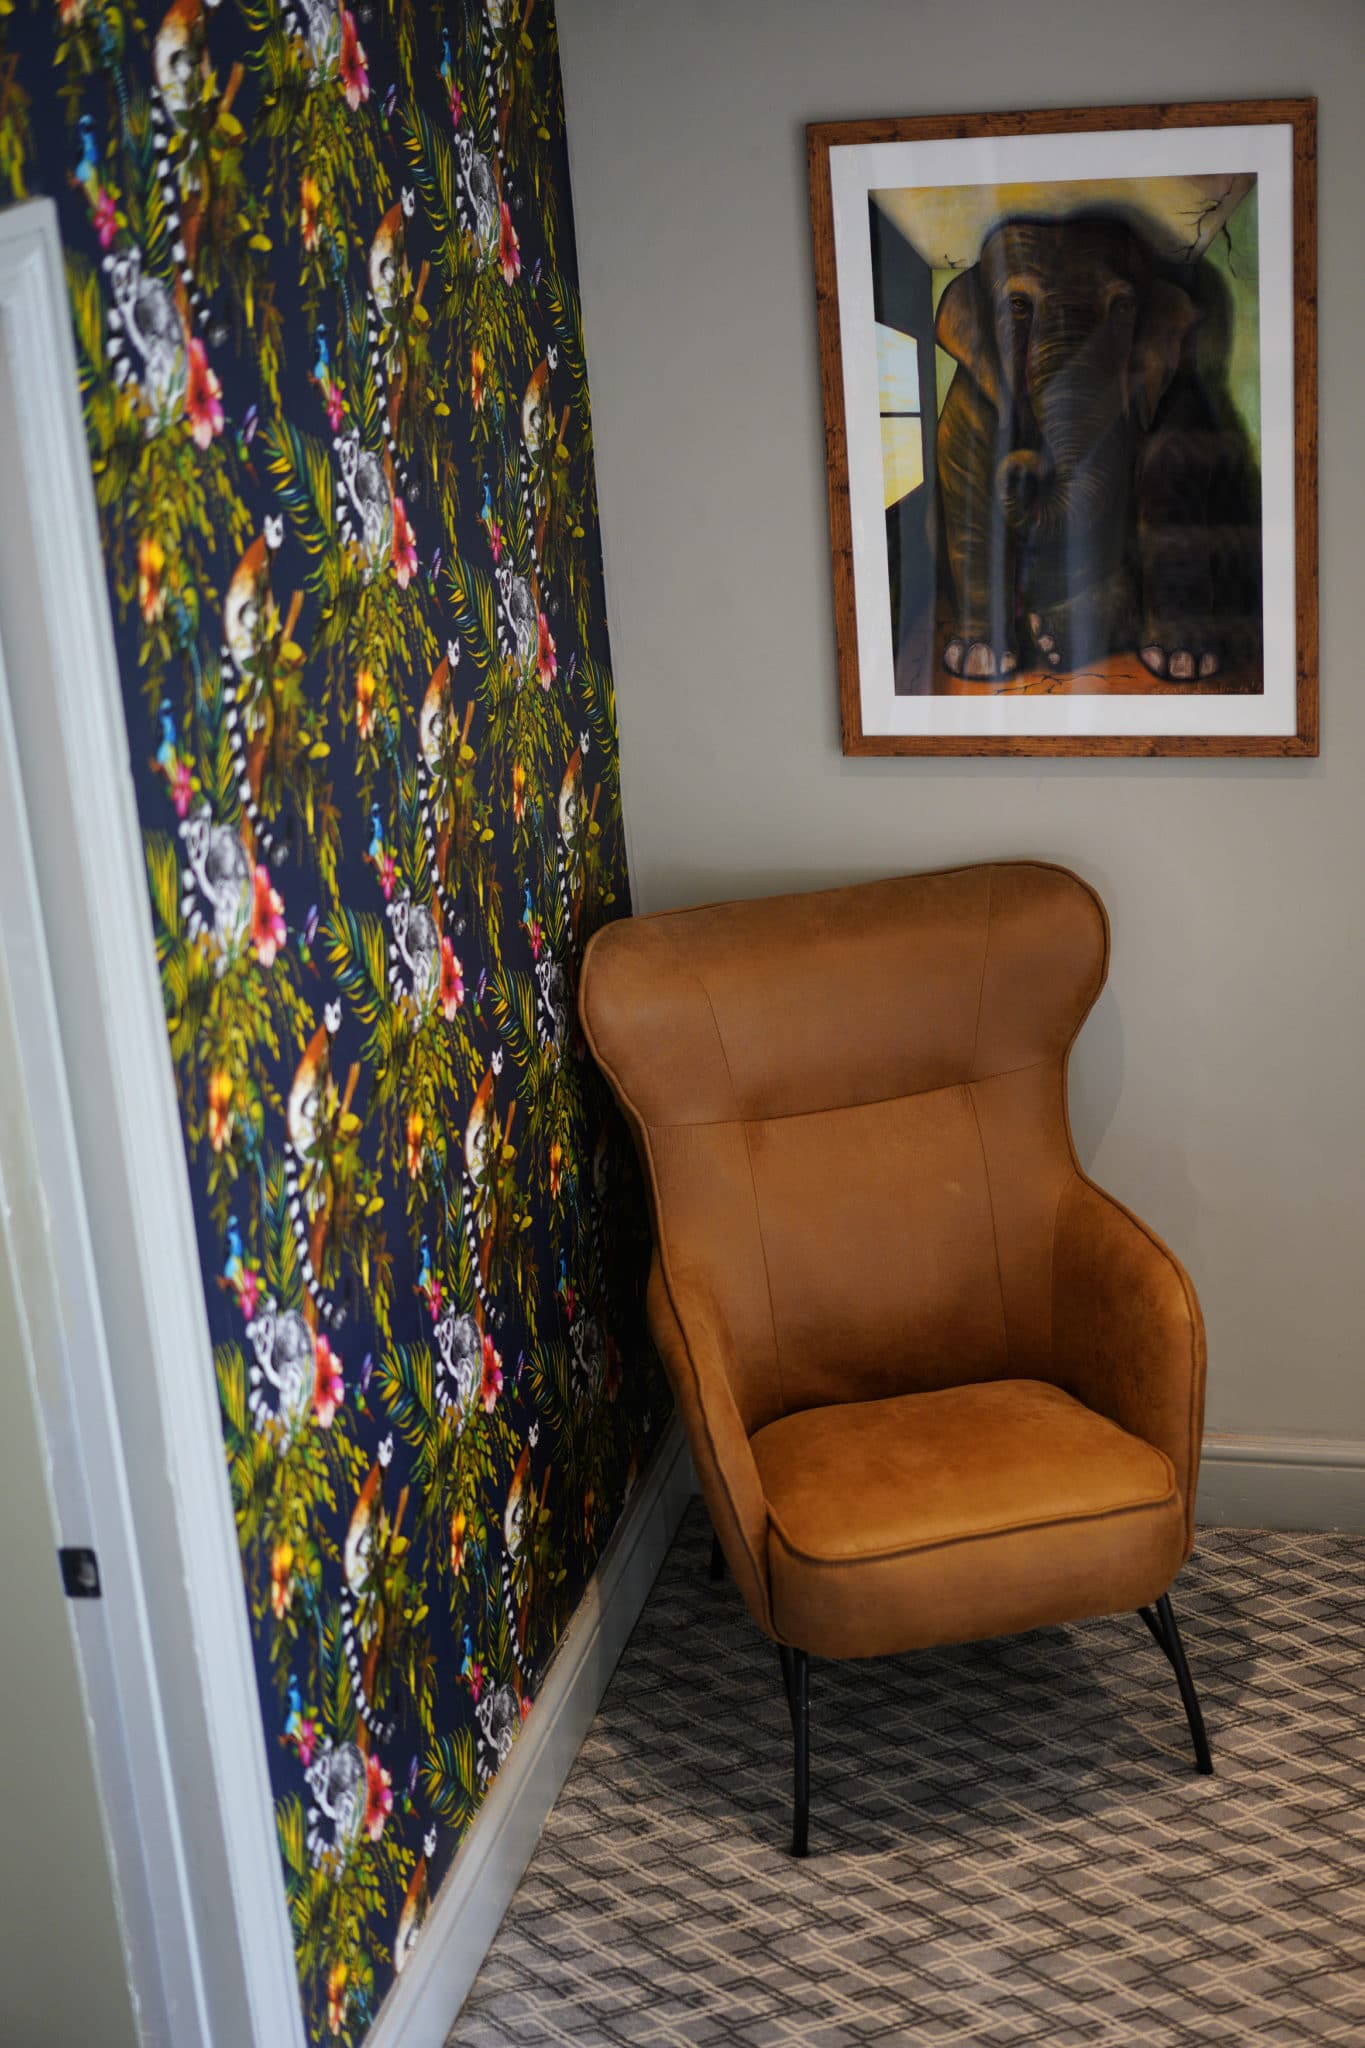 Waiting area with a chair at The Nook, Honiton